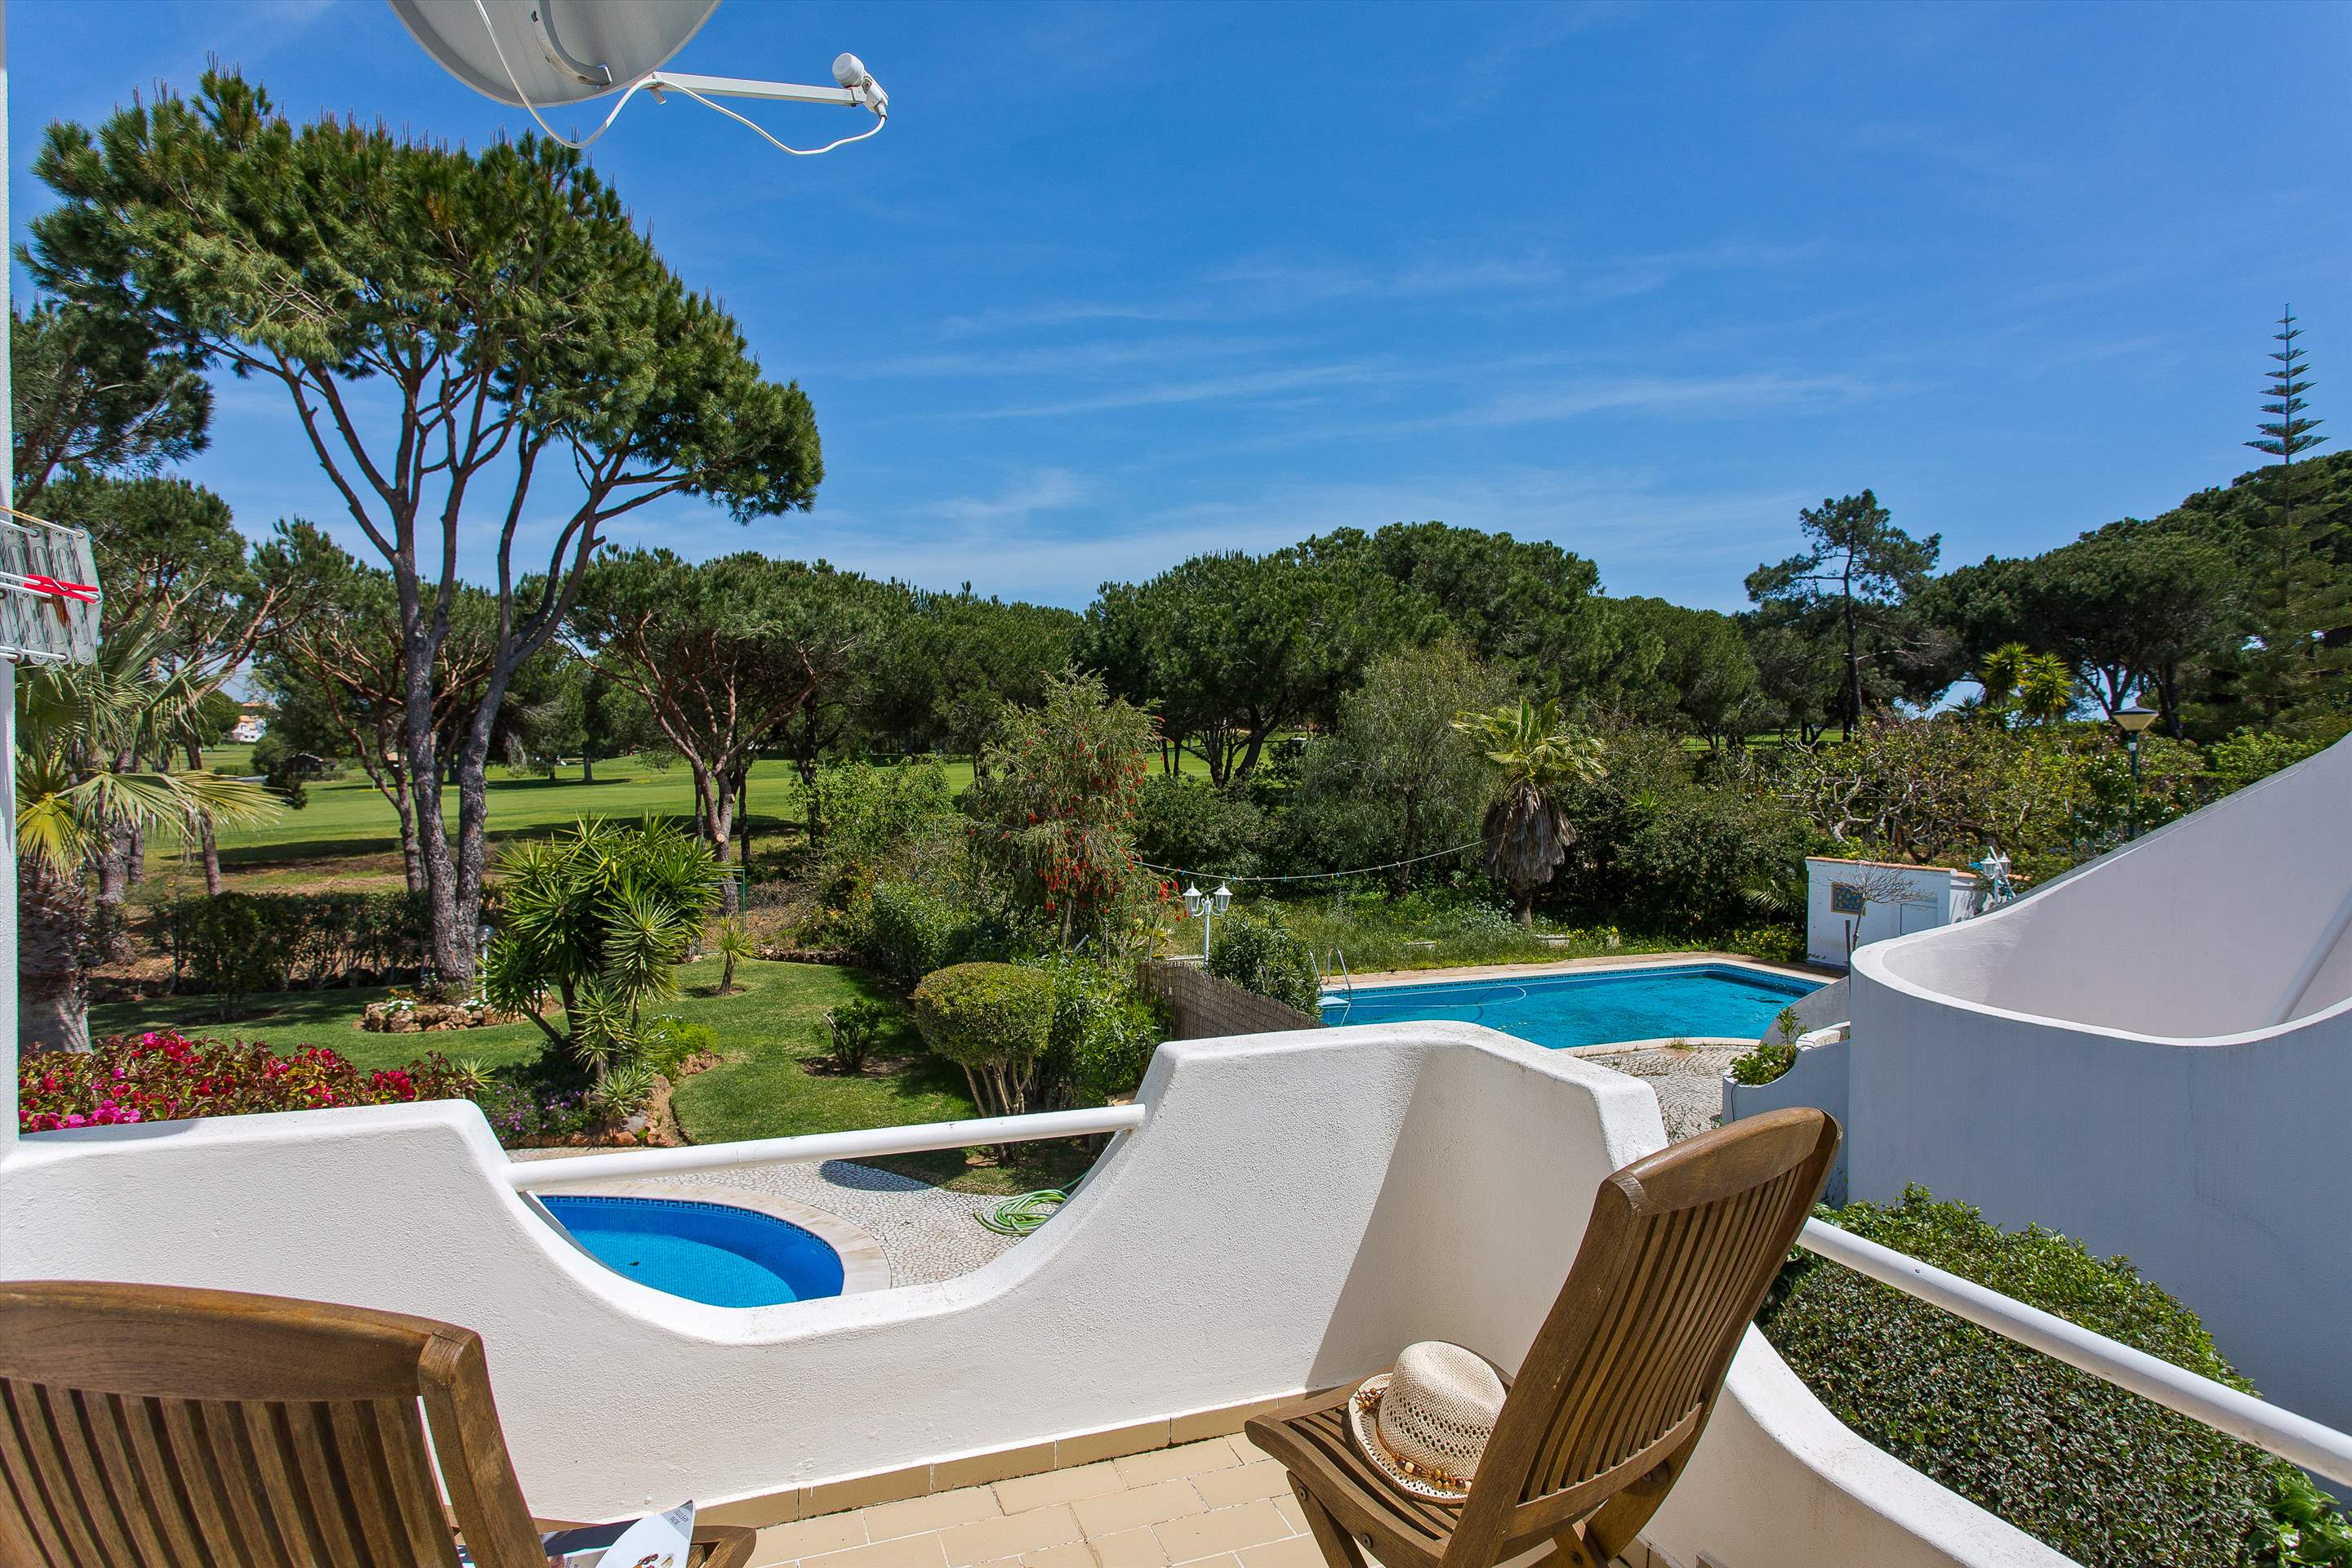 Villa Casablanca, 4 bedroom villa in Vilamoura Area, Algarve Photo #27